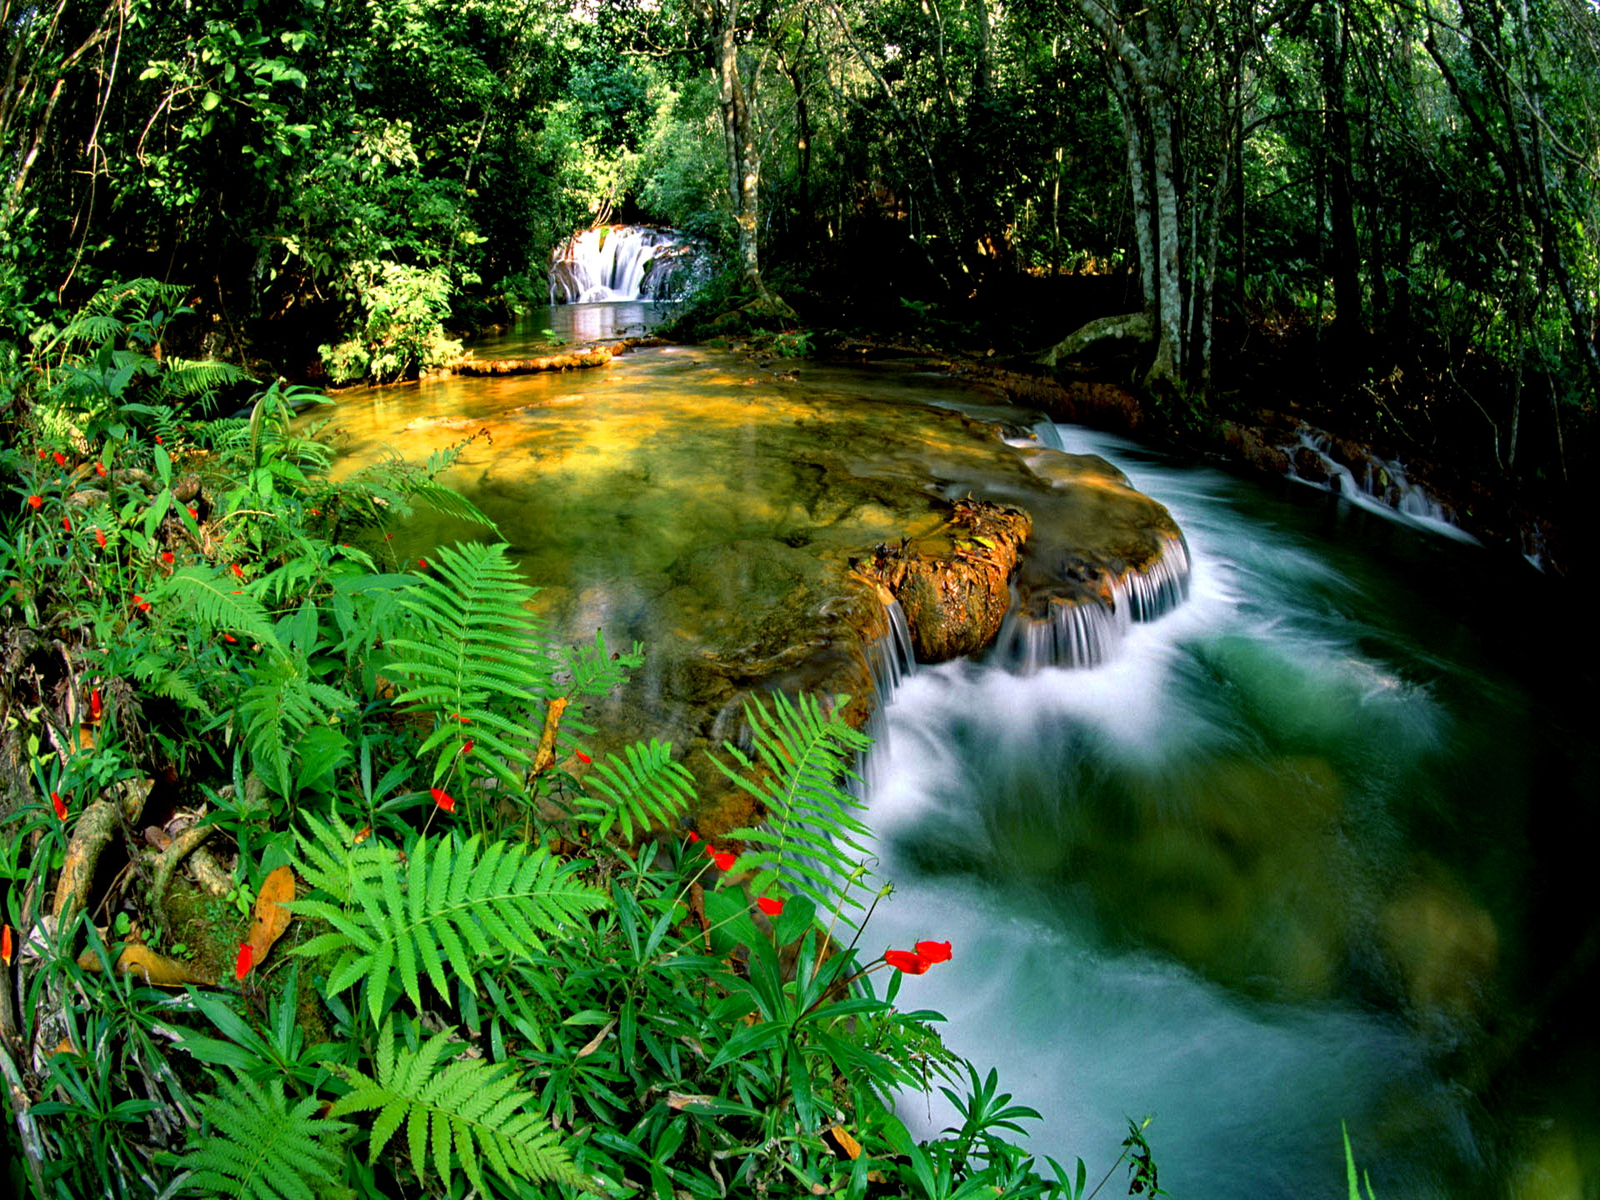 45 jungle wallpaper desktop on wallpapersafari - Desktop wallpaper 1600x1200 ...